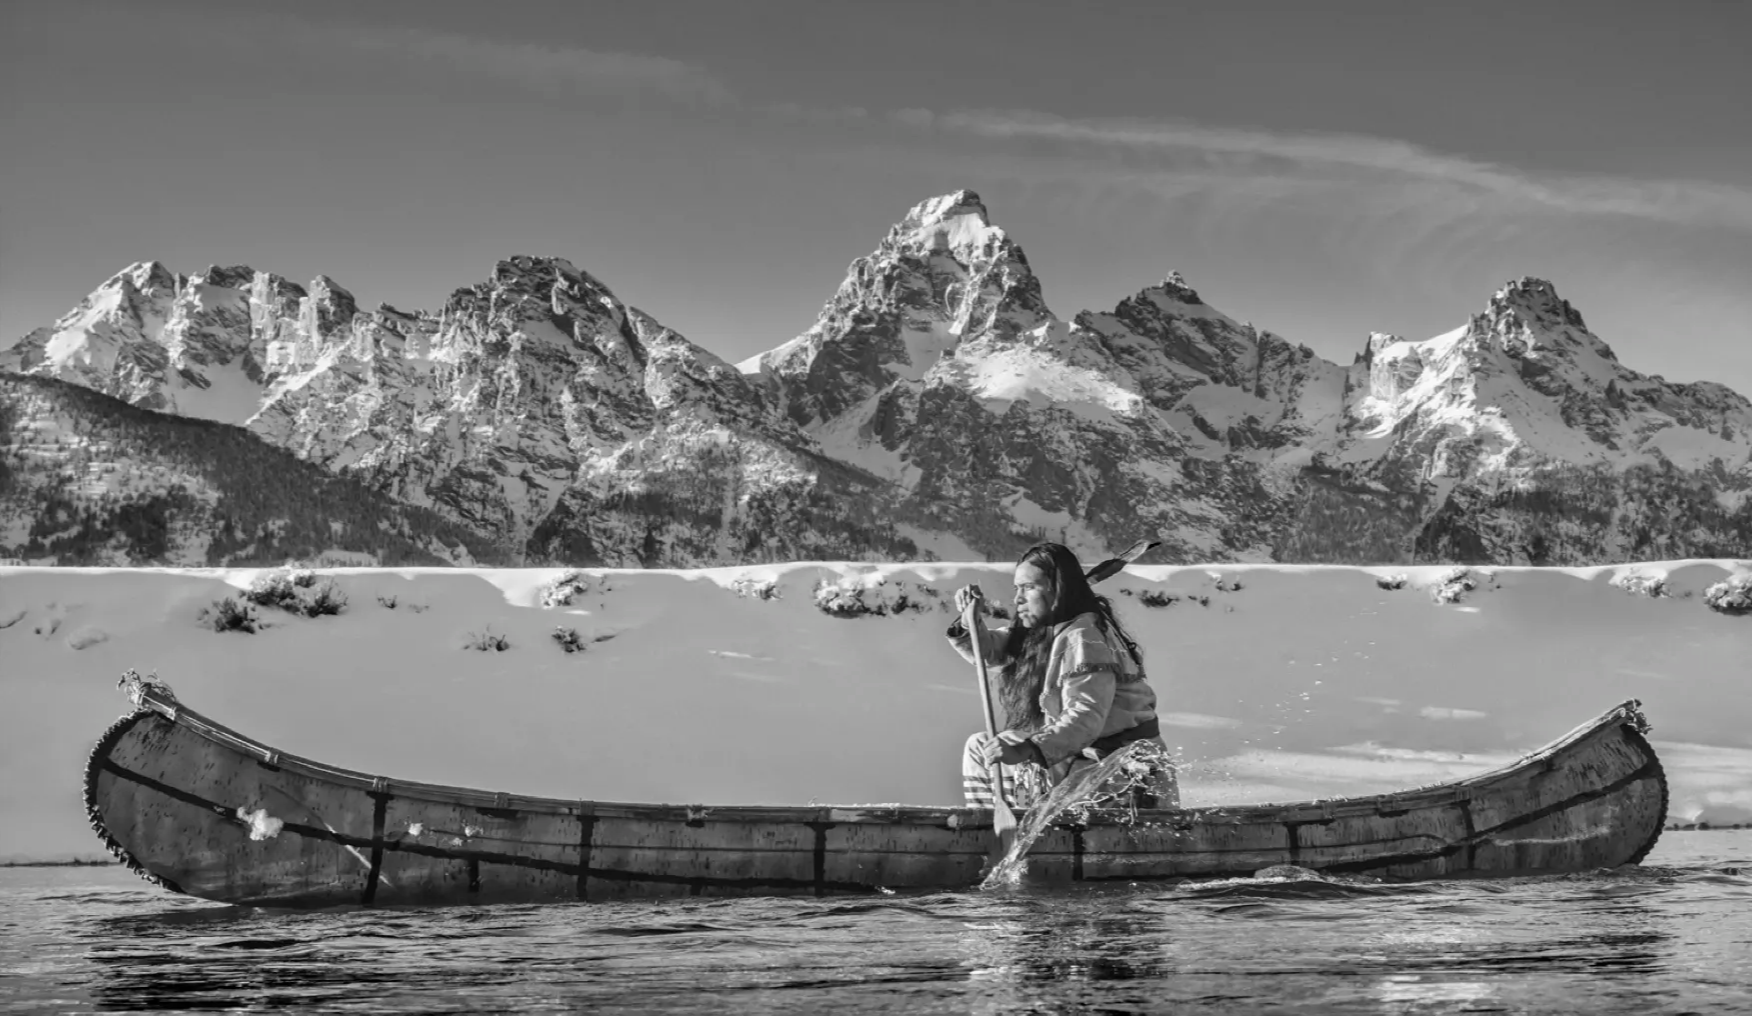 David Yarrow Photography. Sorrel Sky Gallery. Fine Art Photography. Western Photography. Super model photography. David Yarrow Prints. David Yarrow Pictures.  David Yarrow Photos. Native american canoeing in from of the grand tetons in wyoming